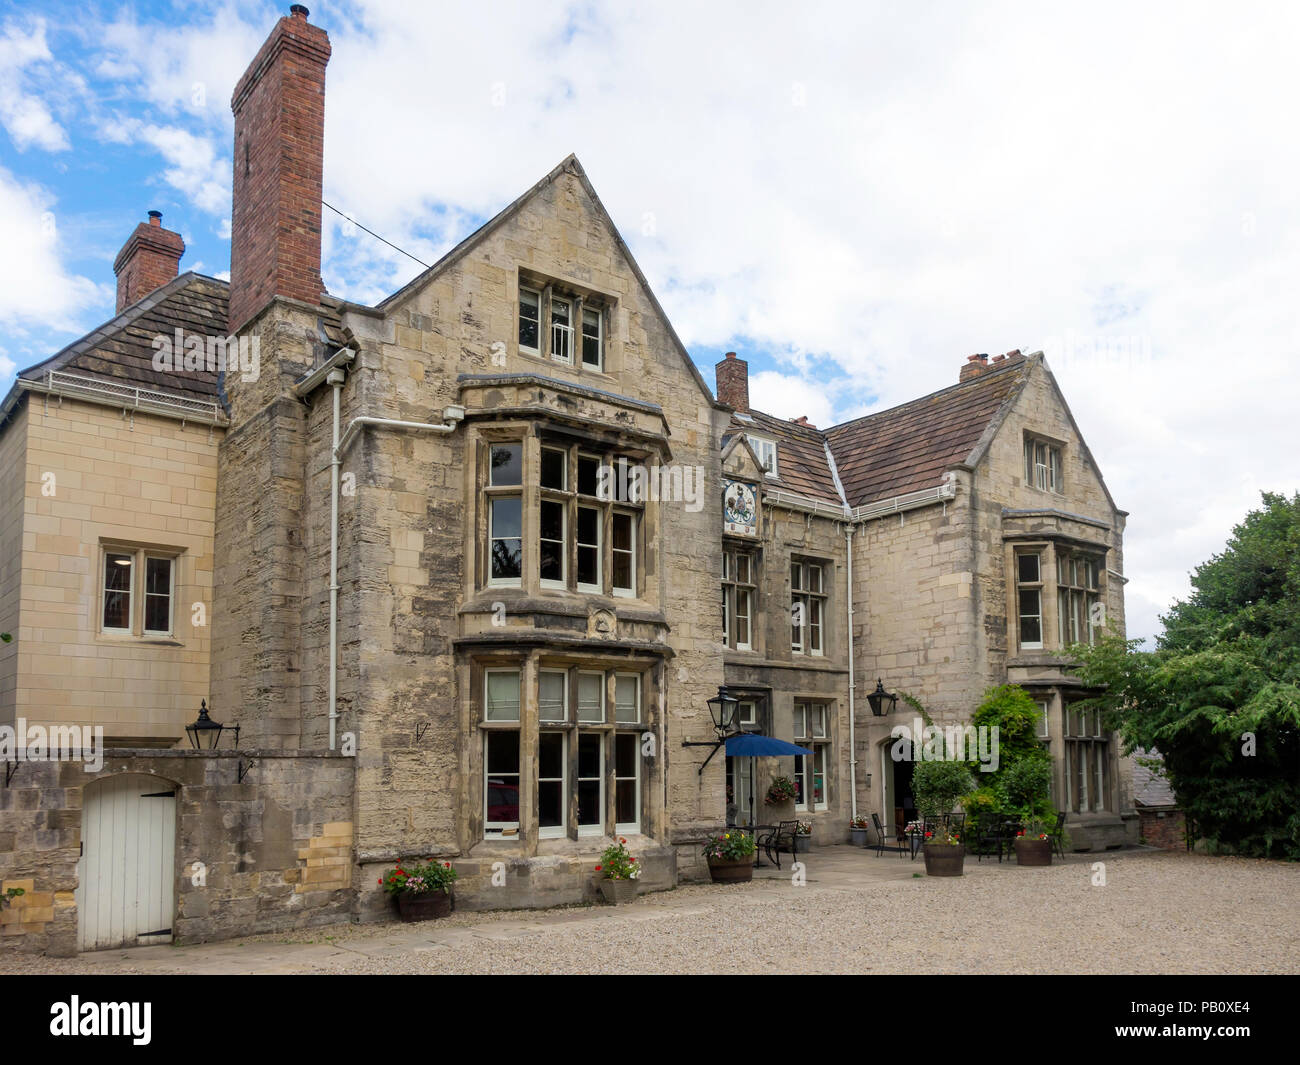 The Deanery Hotel and Restaurant, a Grade II red star listed building dating back to 1625 and located beside Ripon Cathedral North Yorkshire Stock Photo